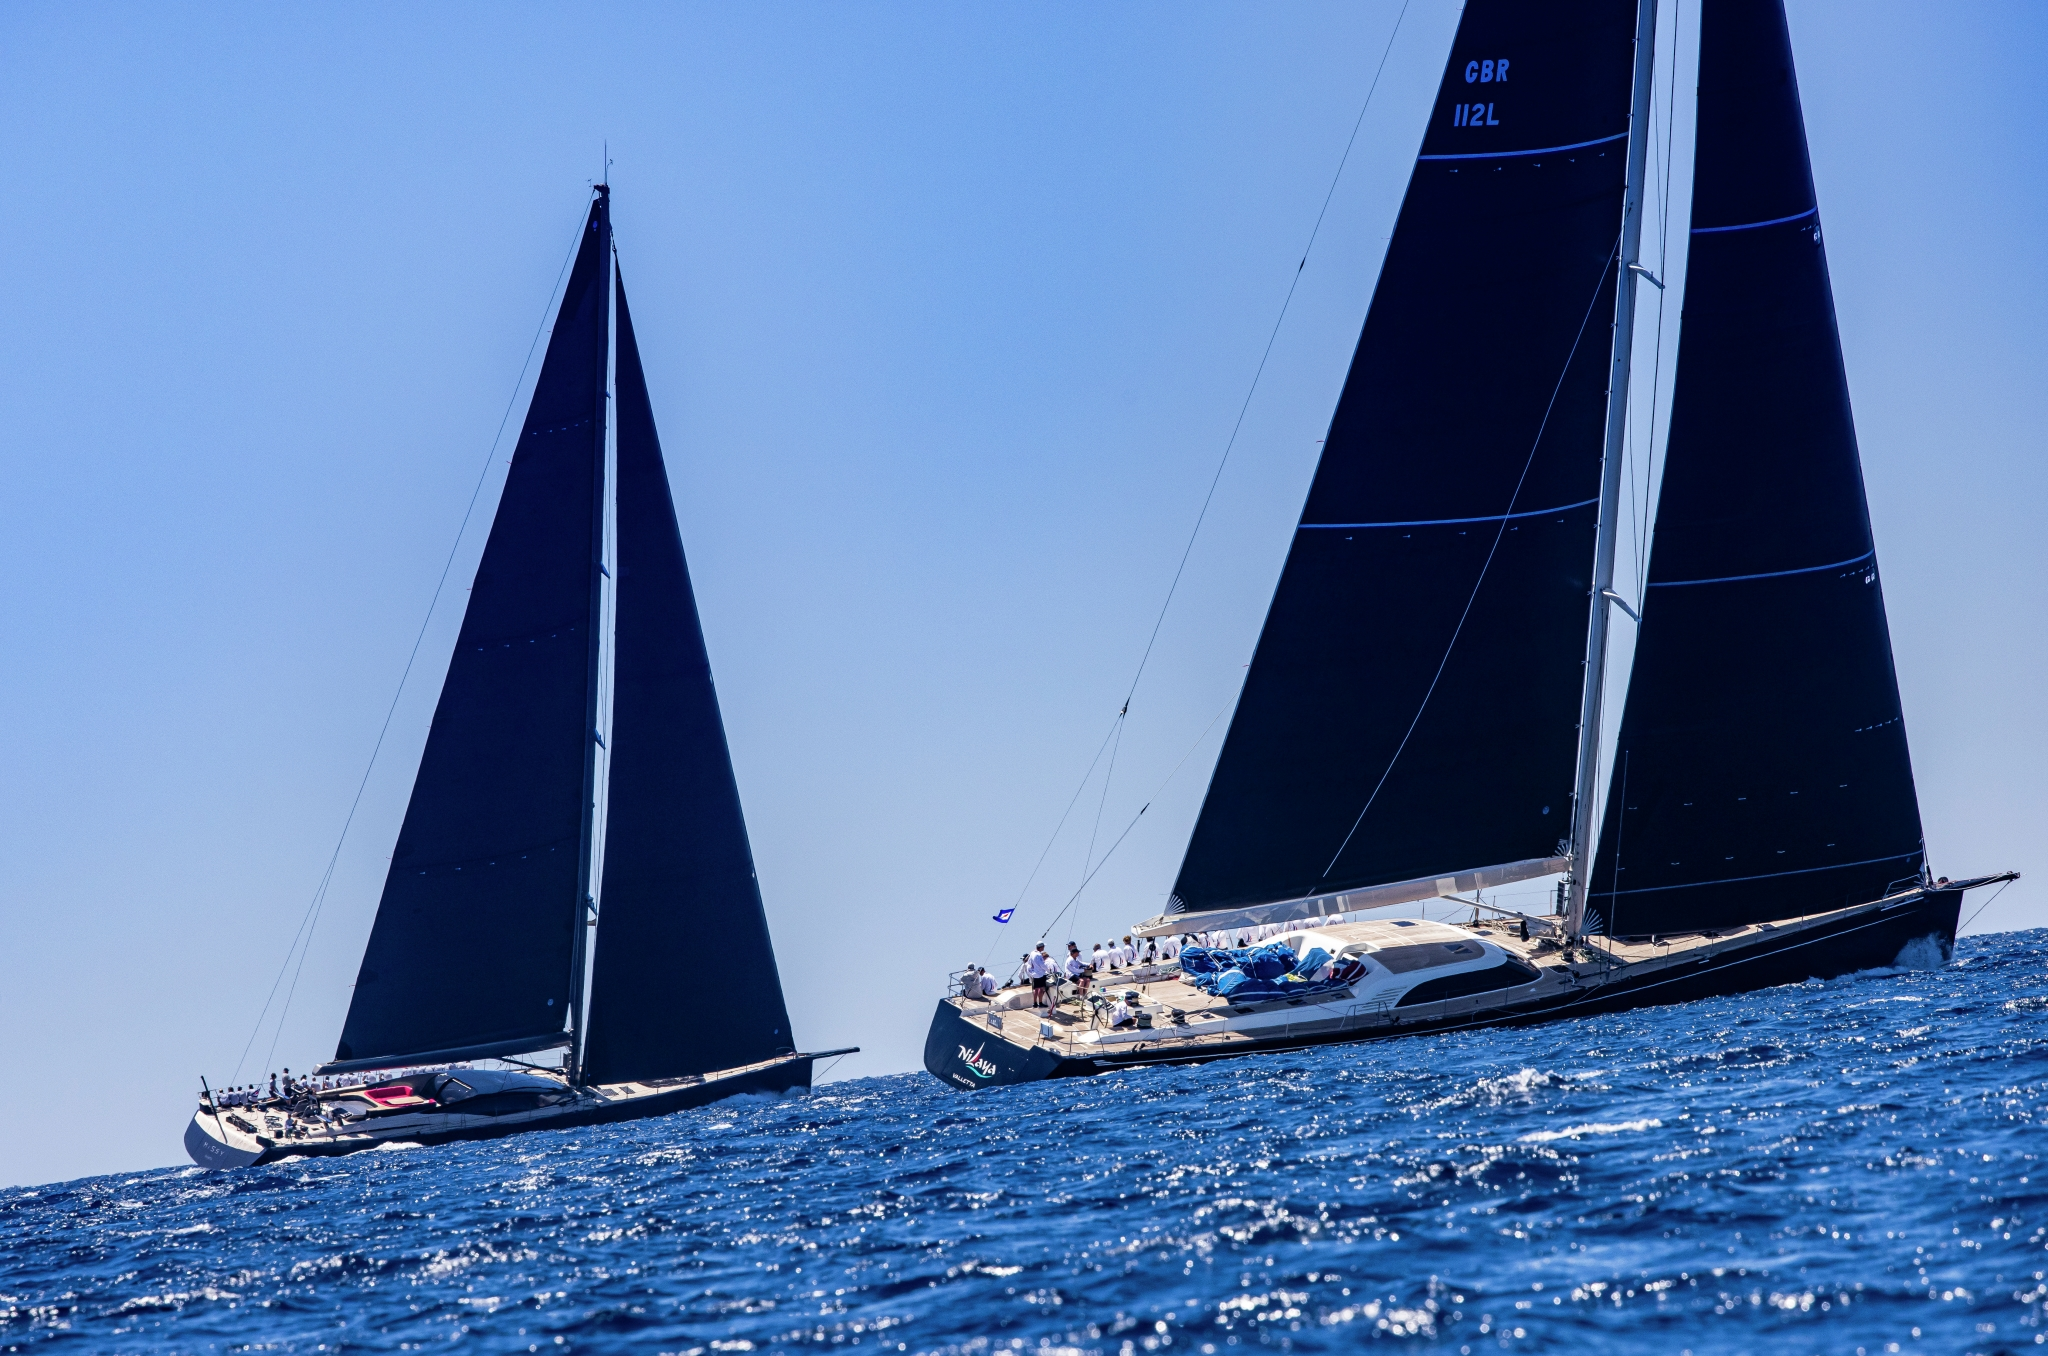 Superyacht Cup Palma 2021. Two of the competitors are neck and neck.